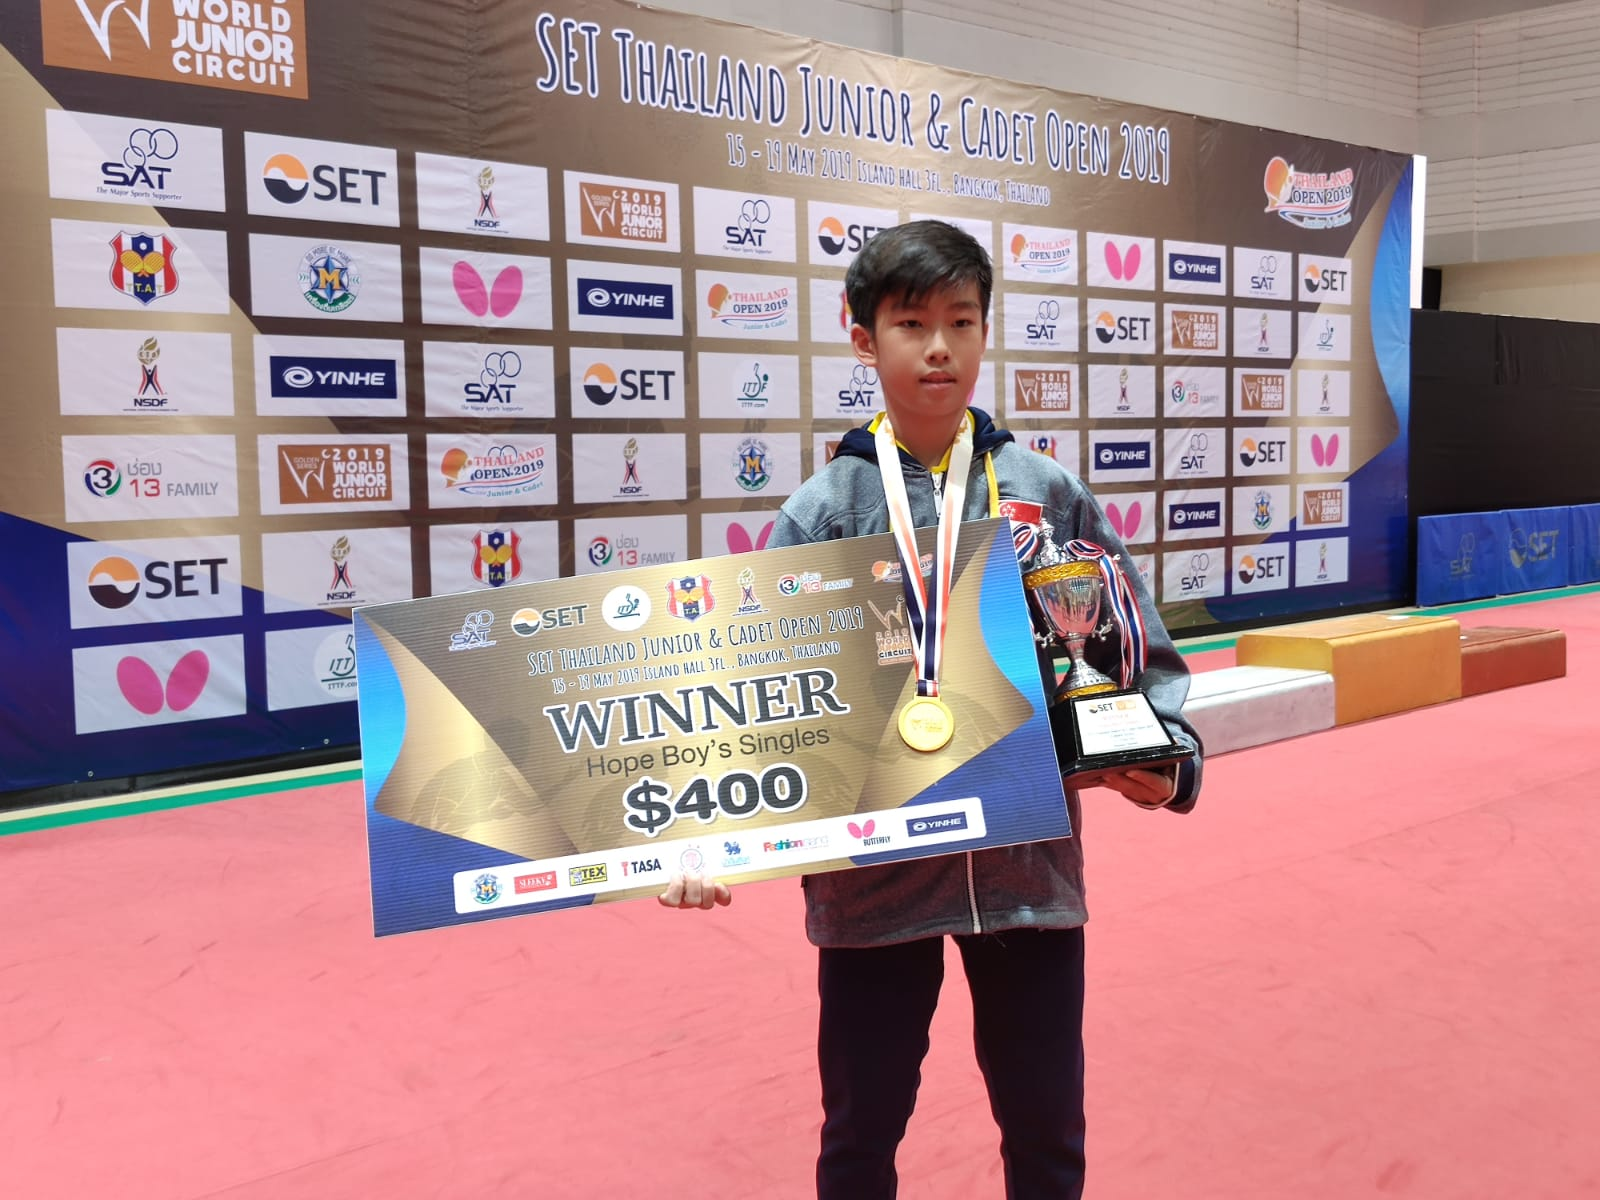 Singapore finished with 1 gold, 2 silvers and 1 bronze at the 2019 ITTF Junior Circuit Golden, SET Thailand Junior & Cadet Open, 15 to 19 May 2019